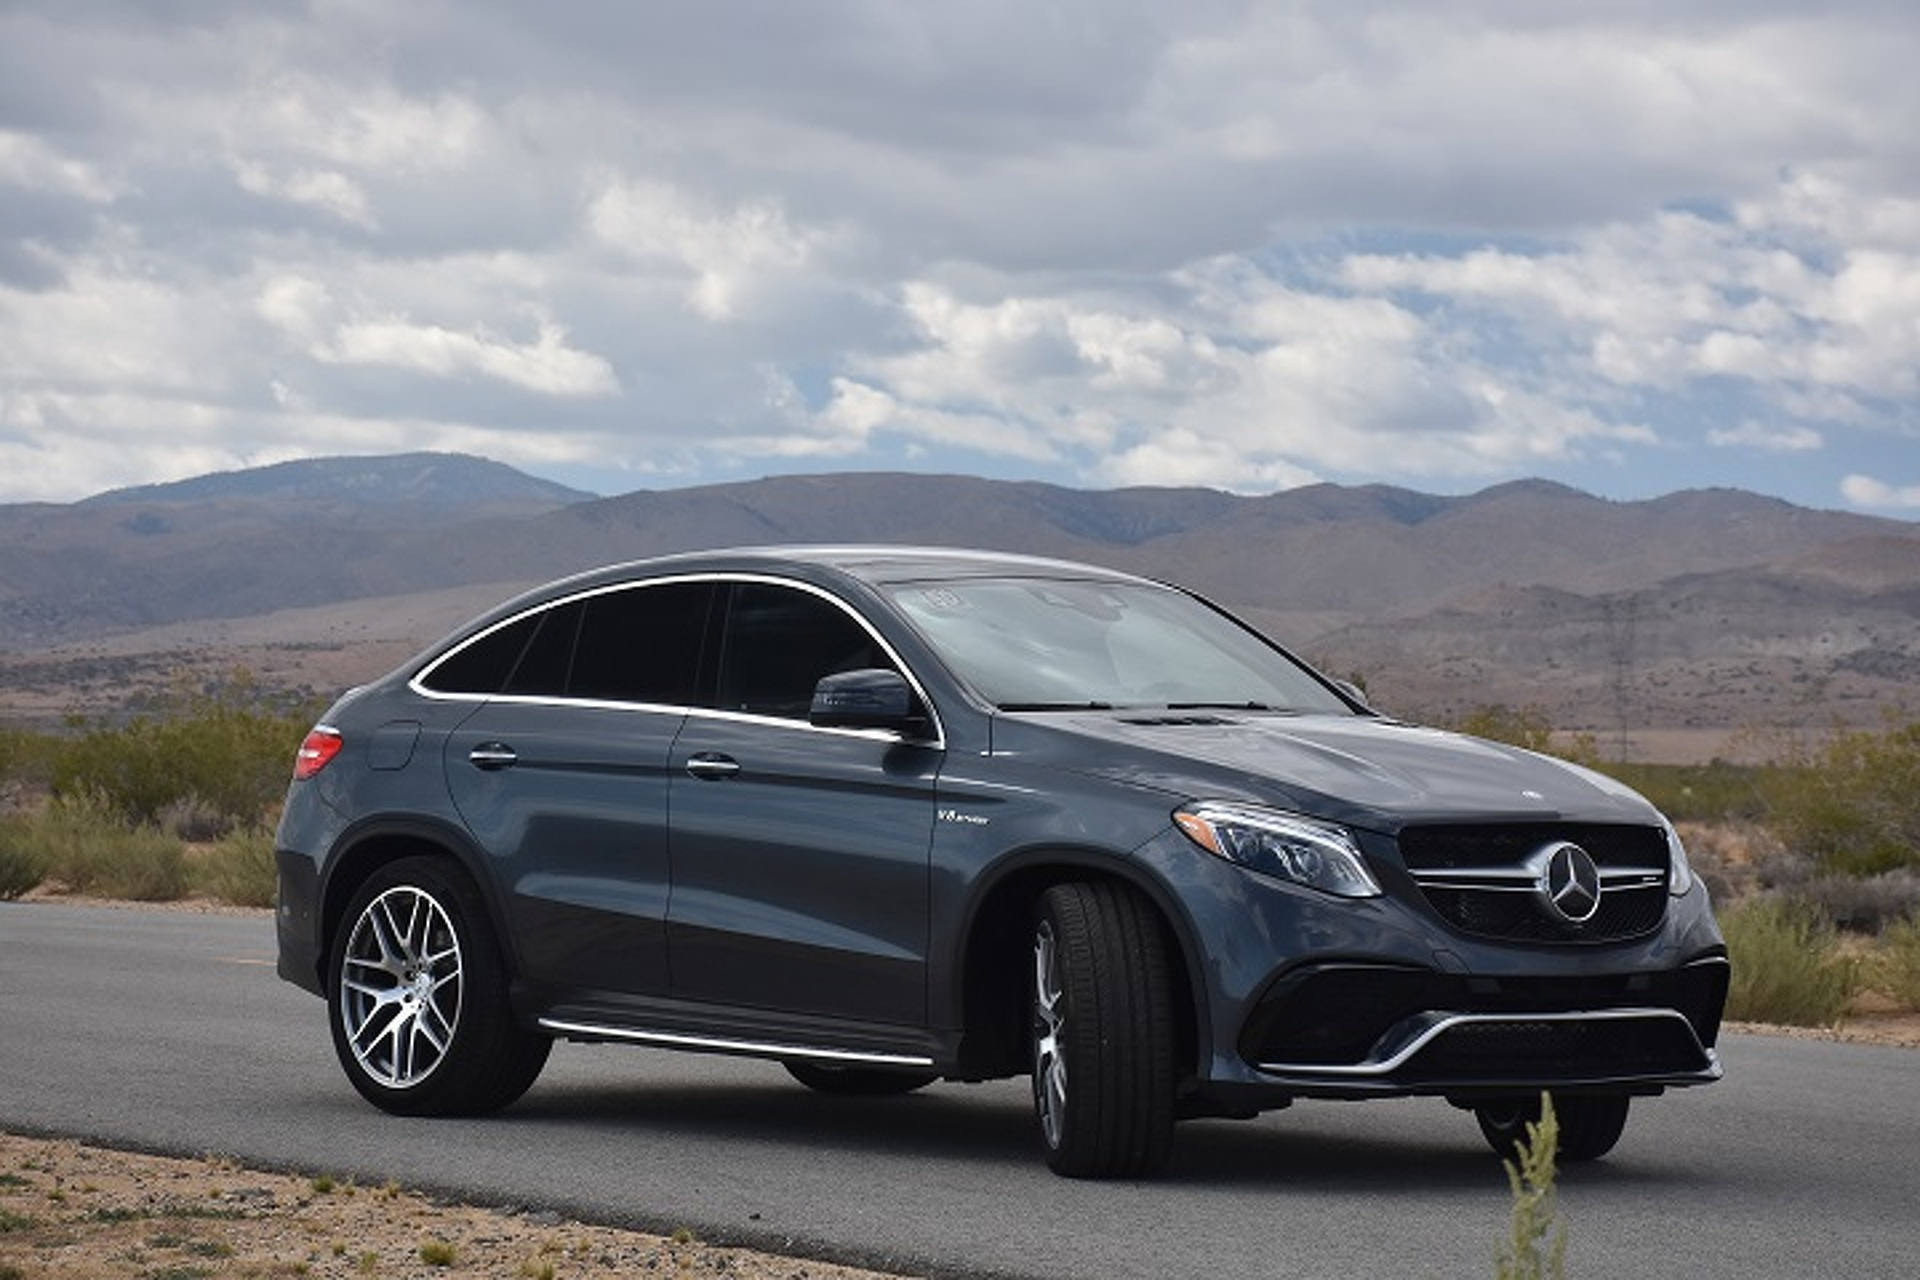 The Mercedes Benz Gle 63 Amg S Coupe Defies Physics First Drive